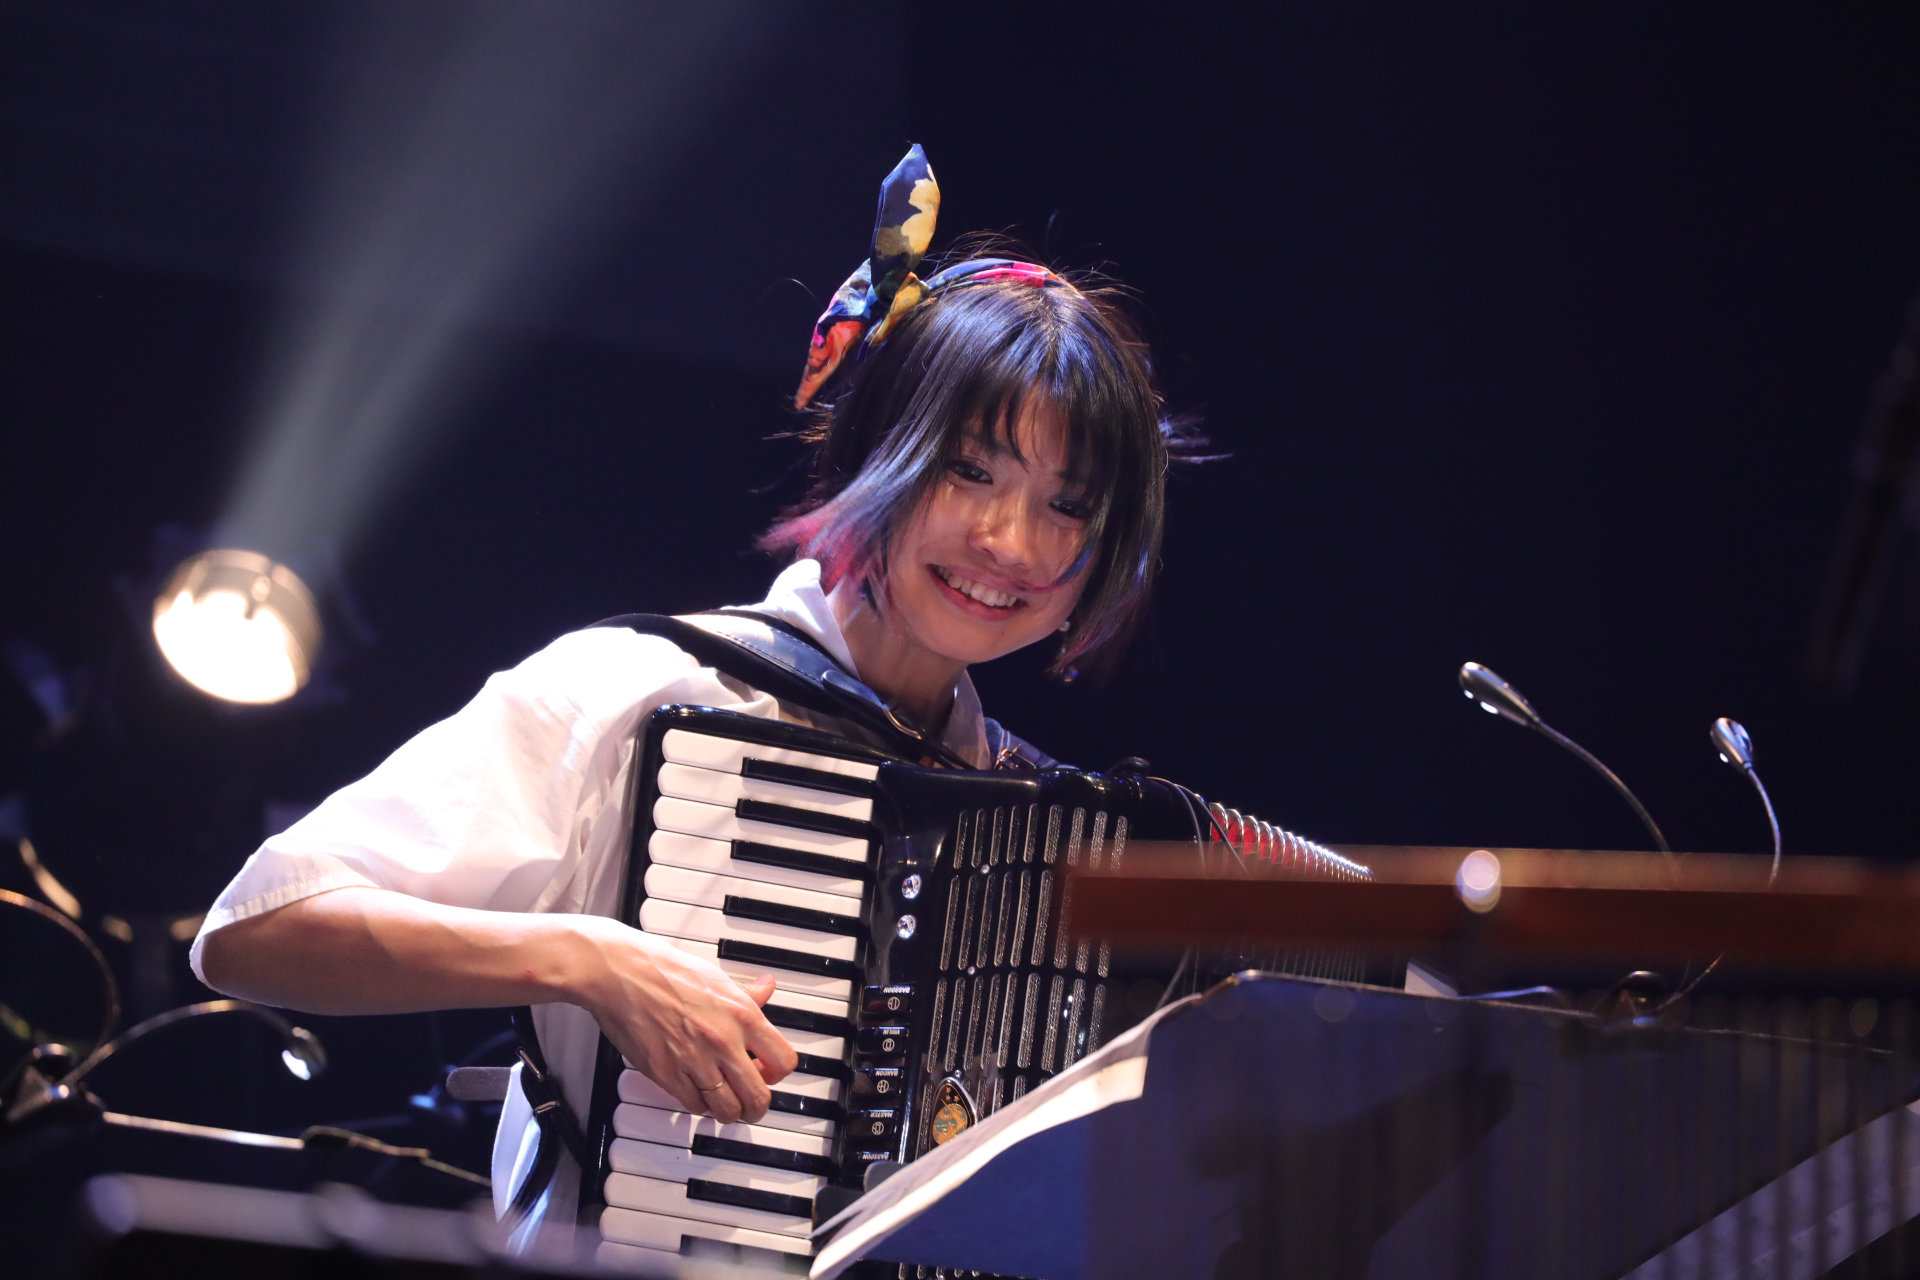 Smiling woman with a colorful headband playing an accordion.